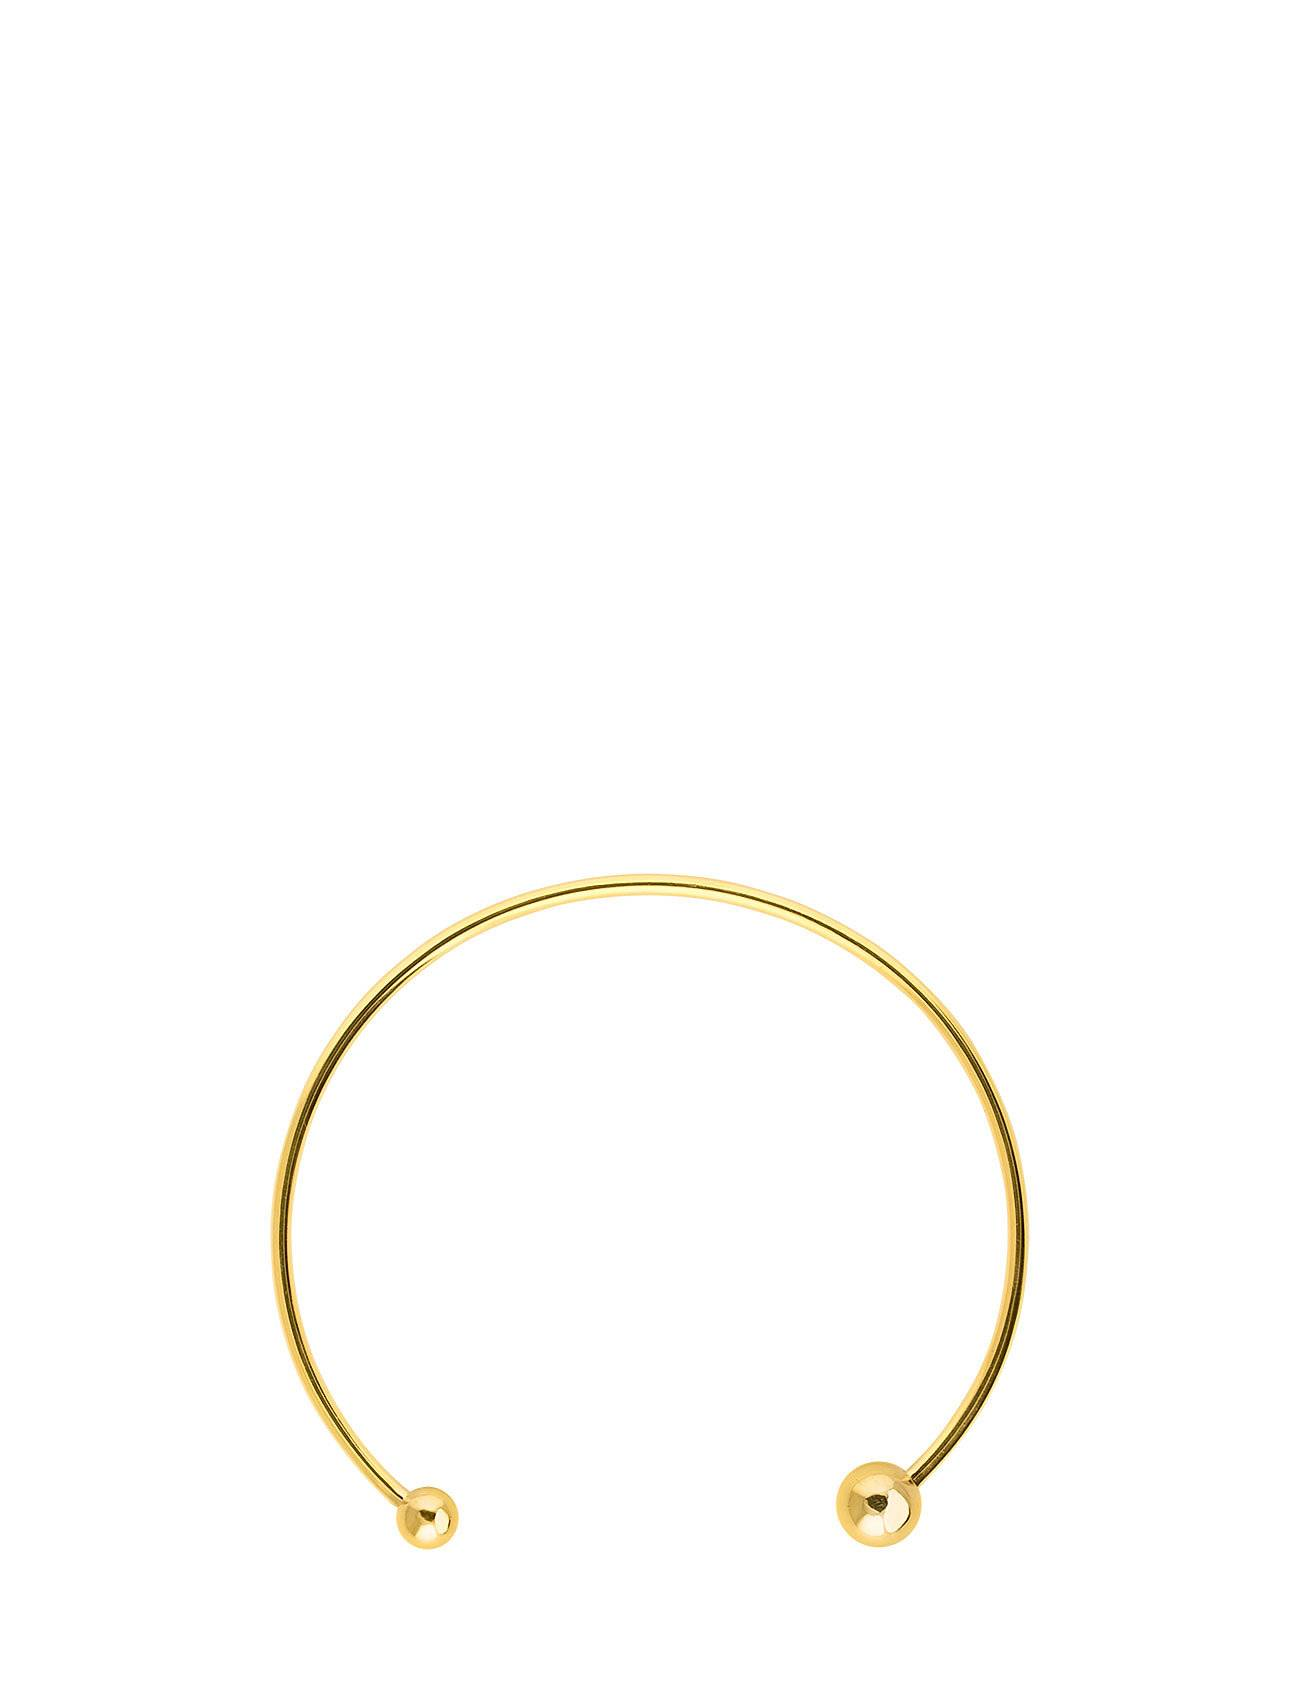 SOPHIE by SOPHIE Planet Choker